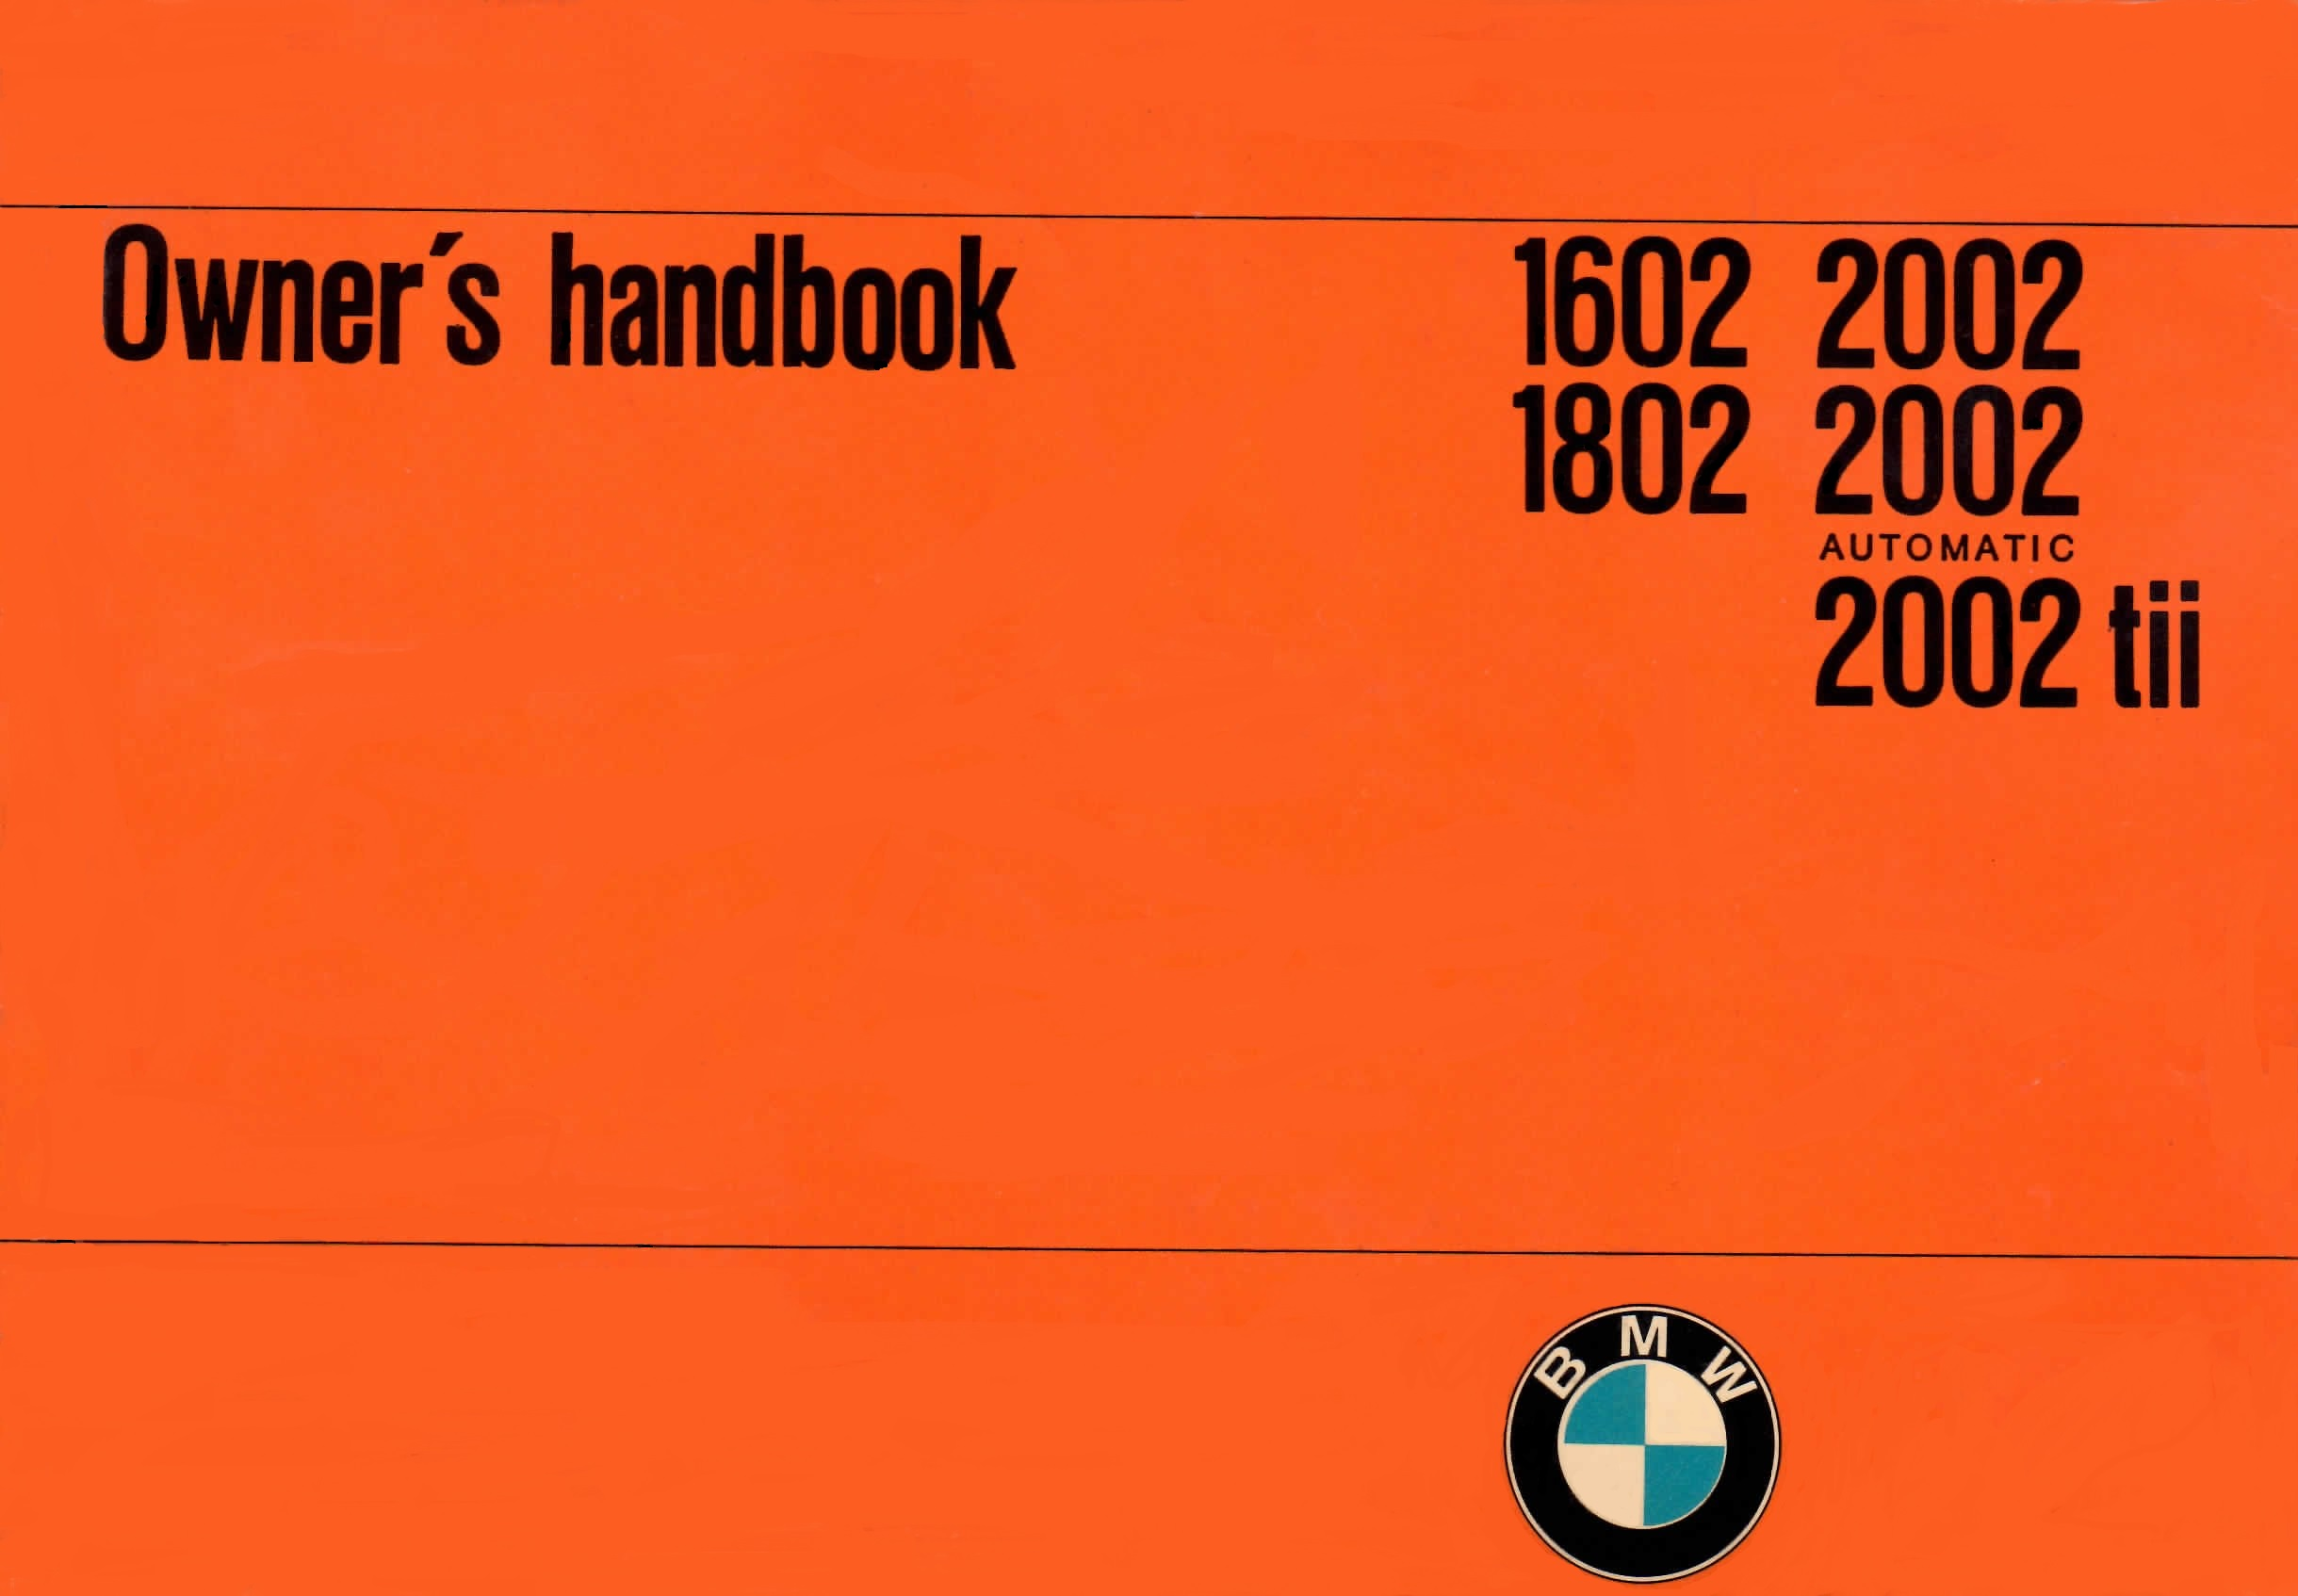 2002 owners manual history and reference bmw 2002 faq